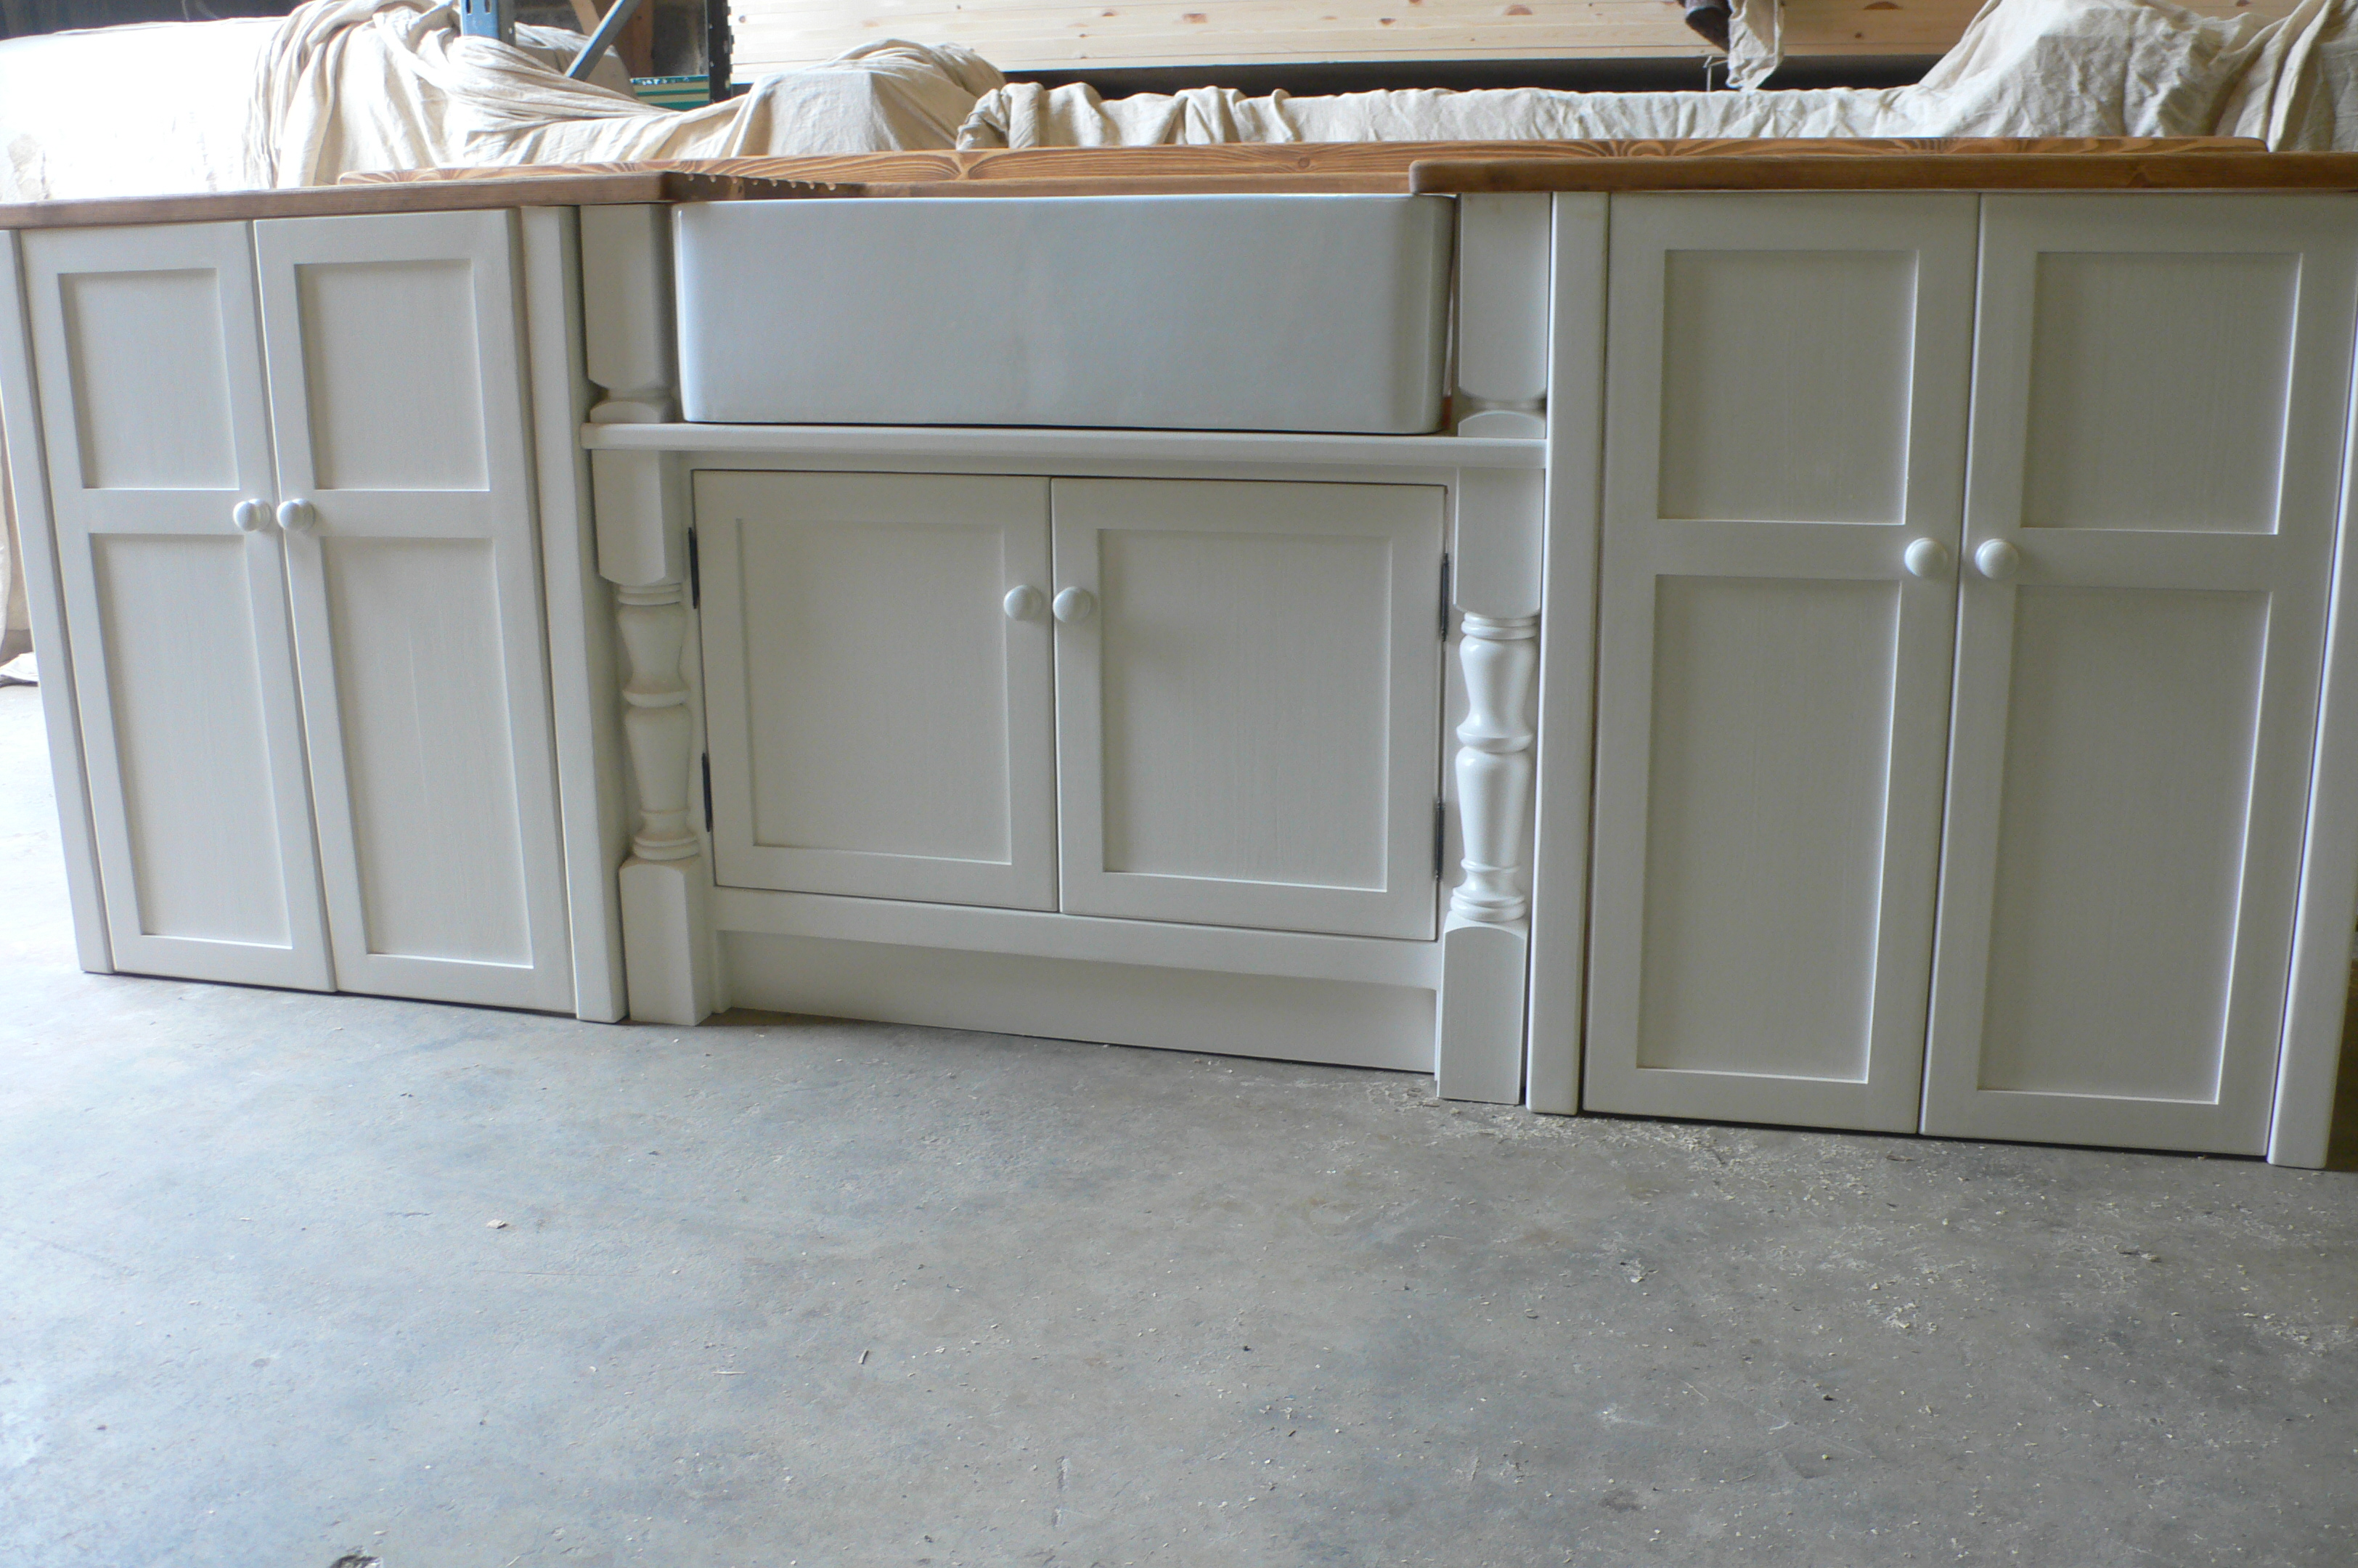 Double Butler Sink Pilaster Sink Unit With Extra Double Butler Sink The